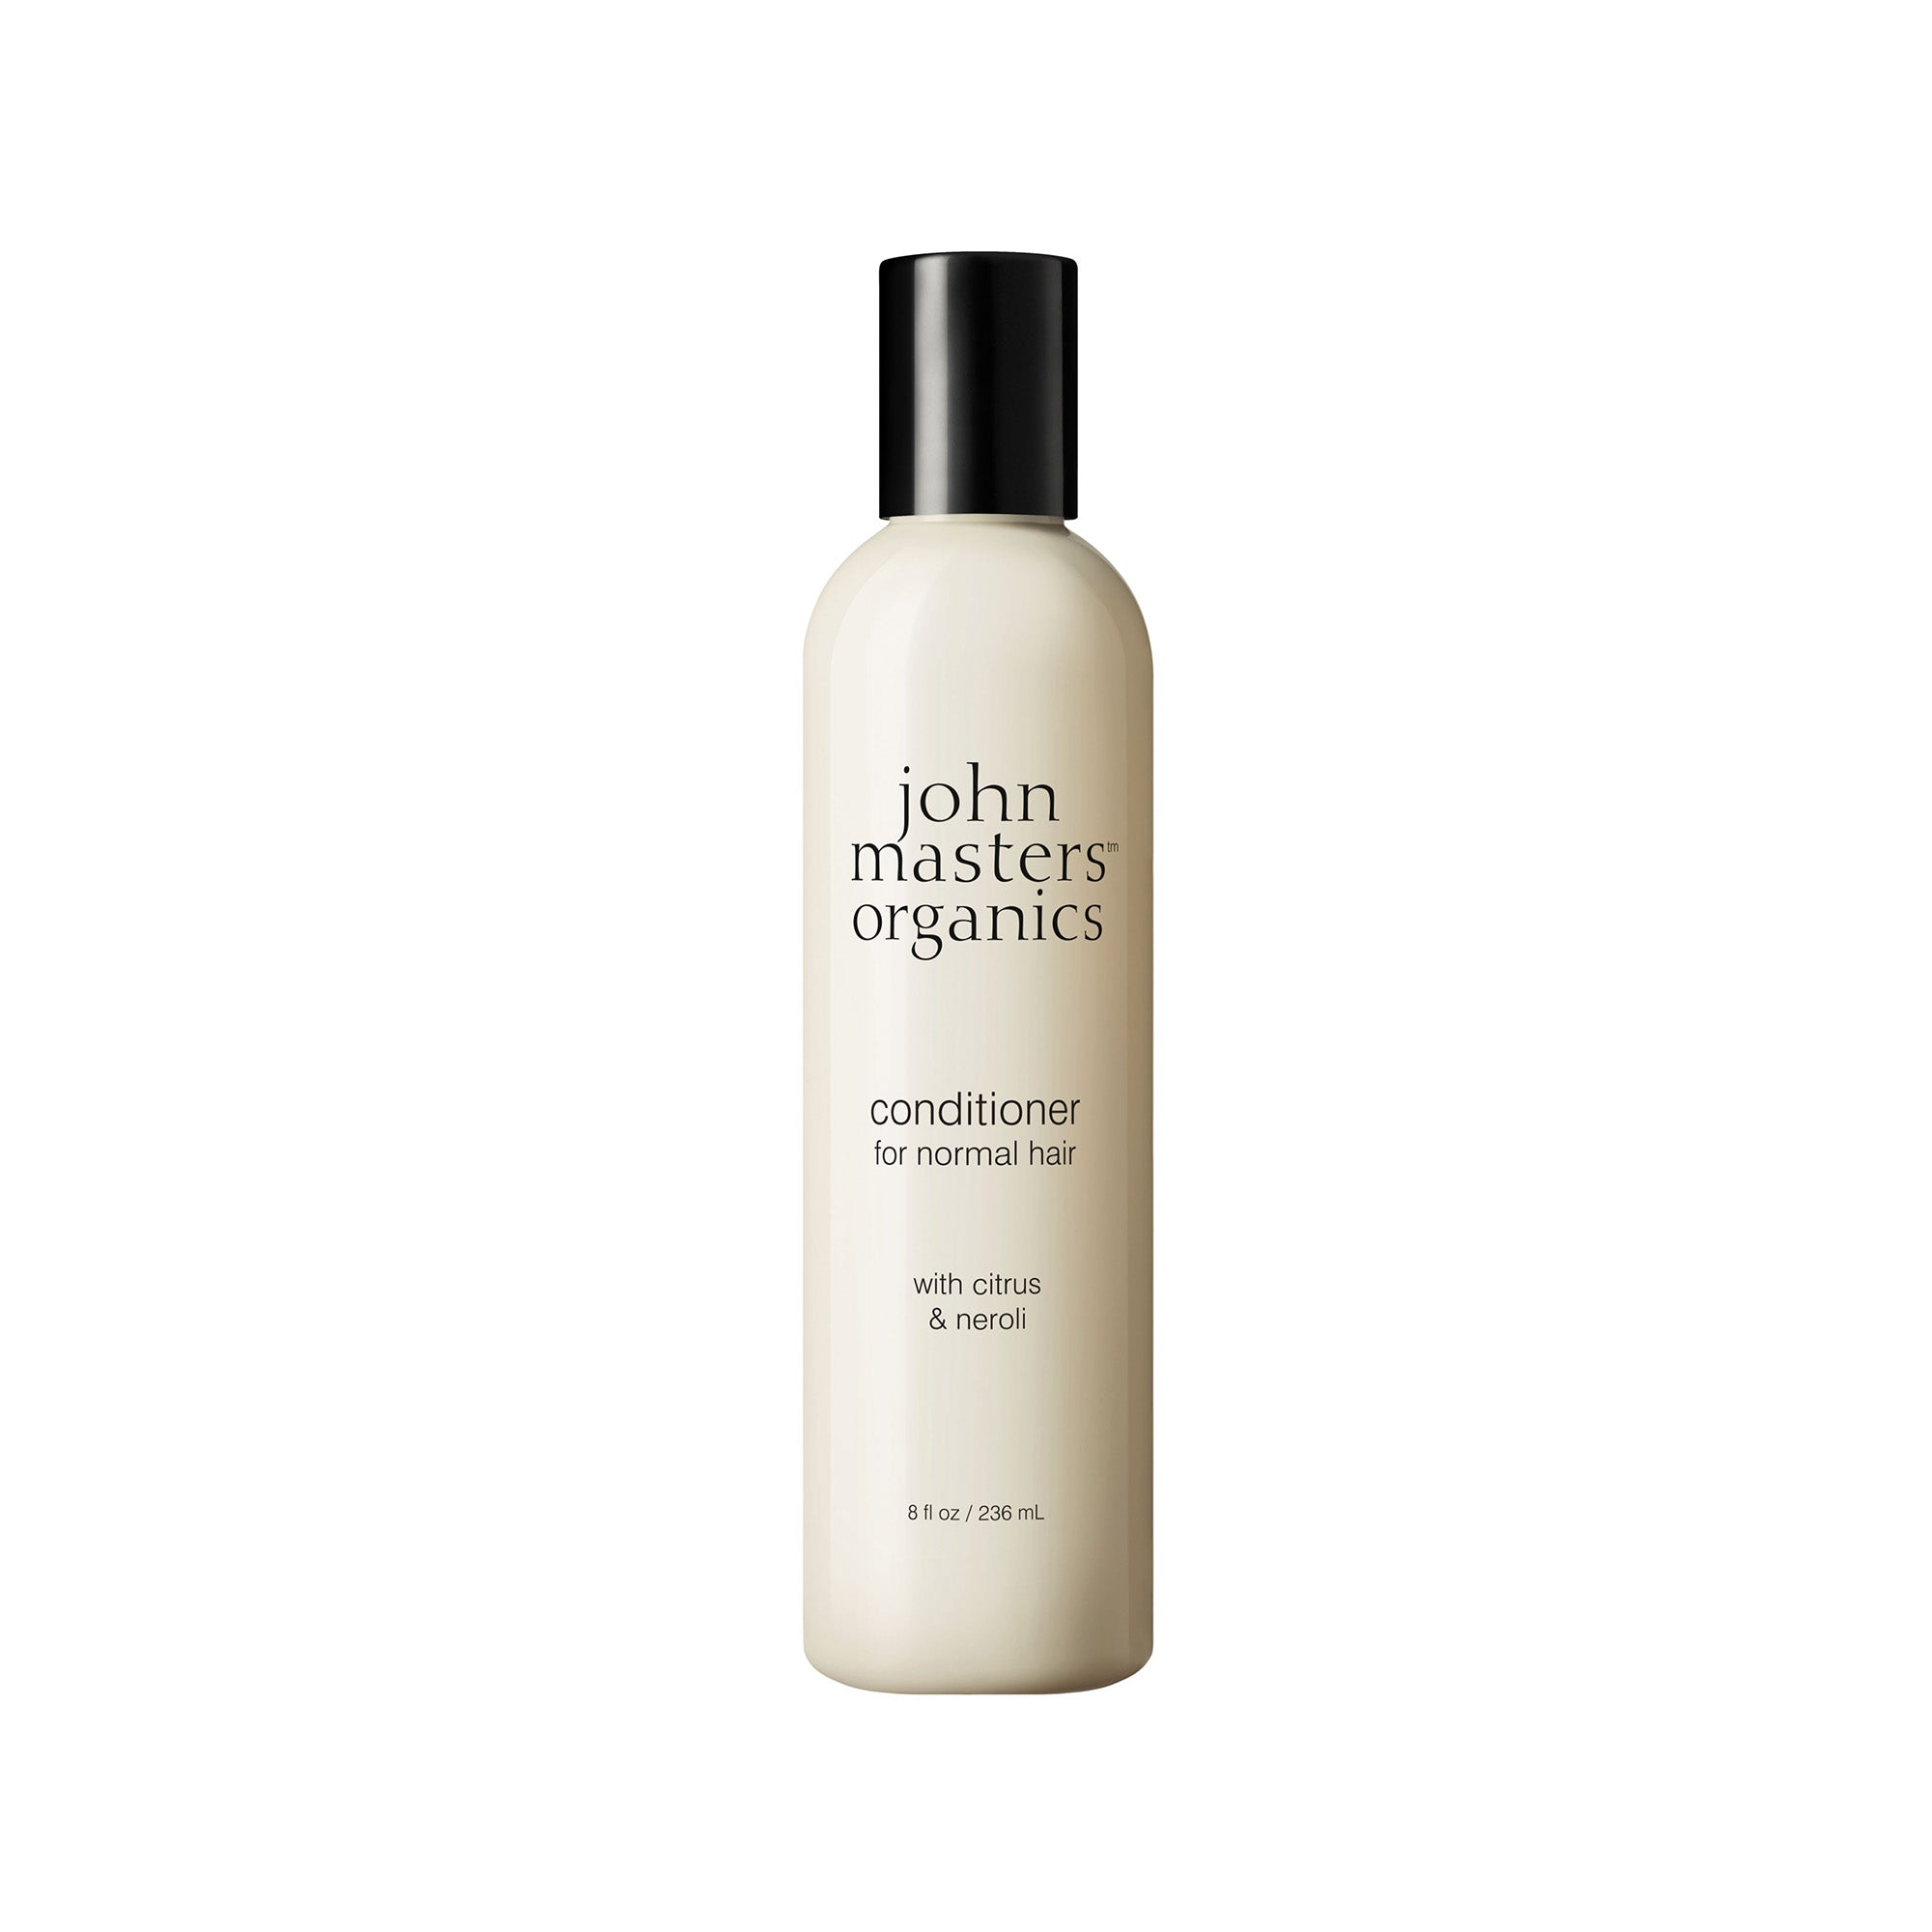 Conditioner for Normal Hair with Citrus & Neroli